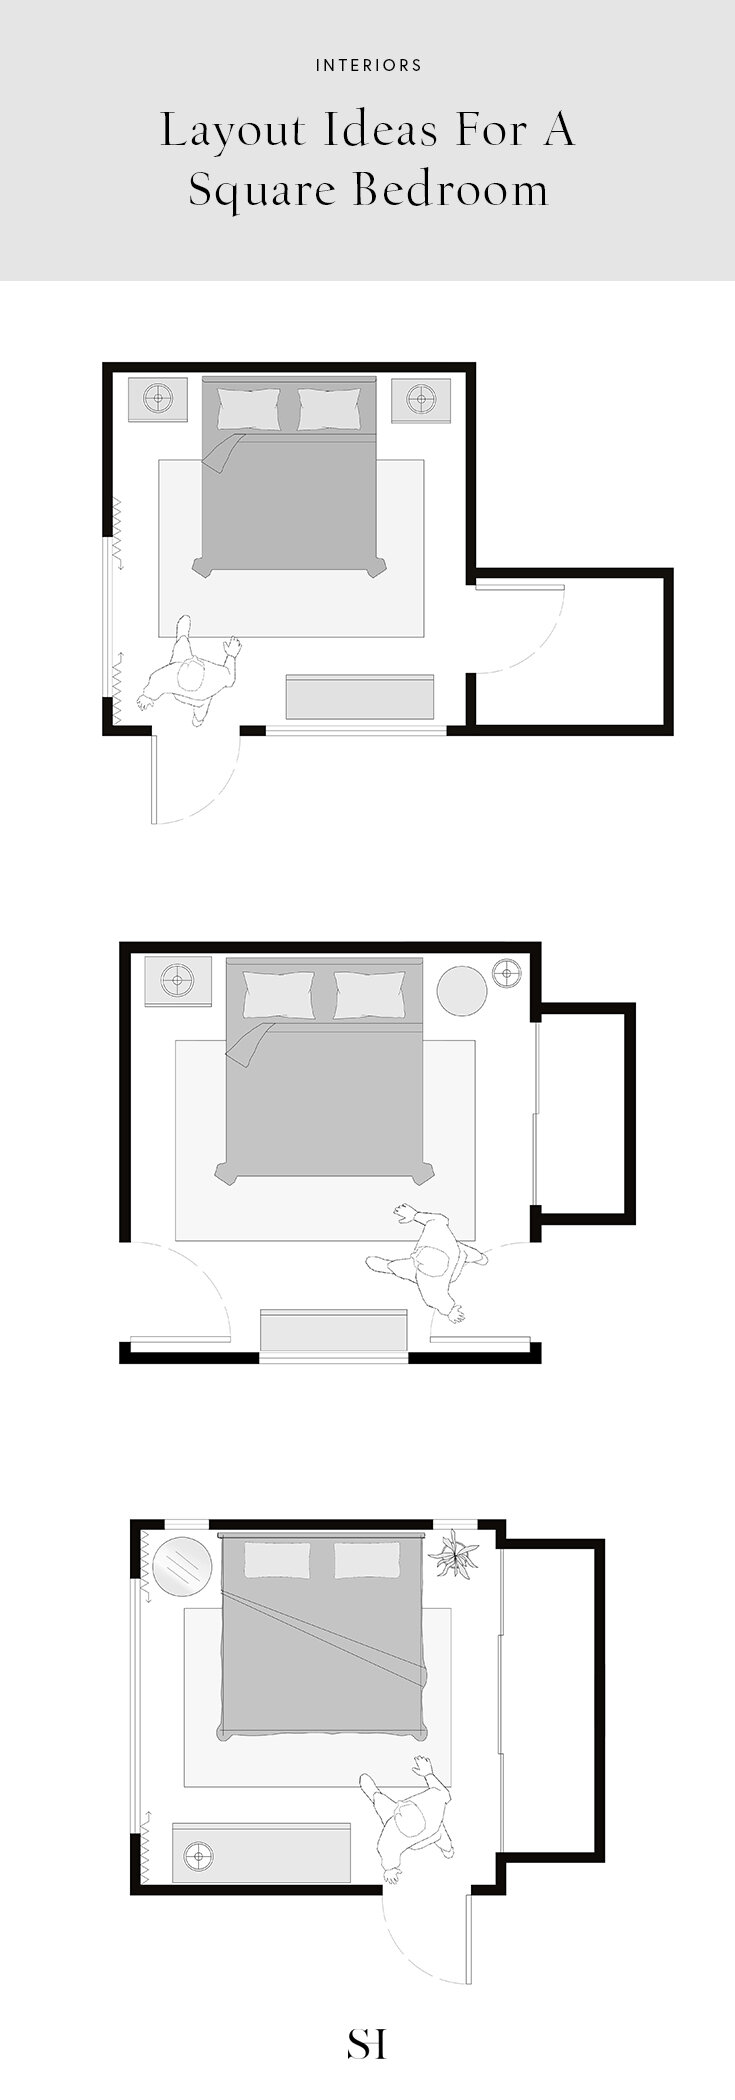 8 Layout Ideas for a 8 x 8 Square Bedroom (w/ Floor Plans) — The